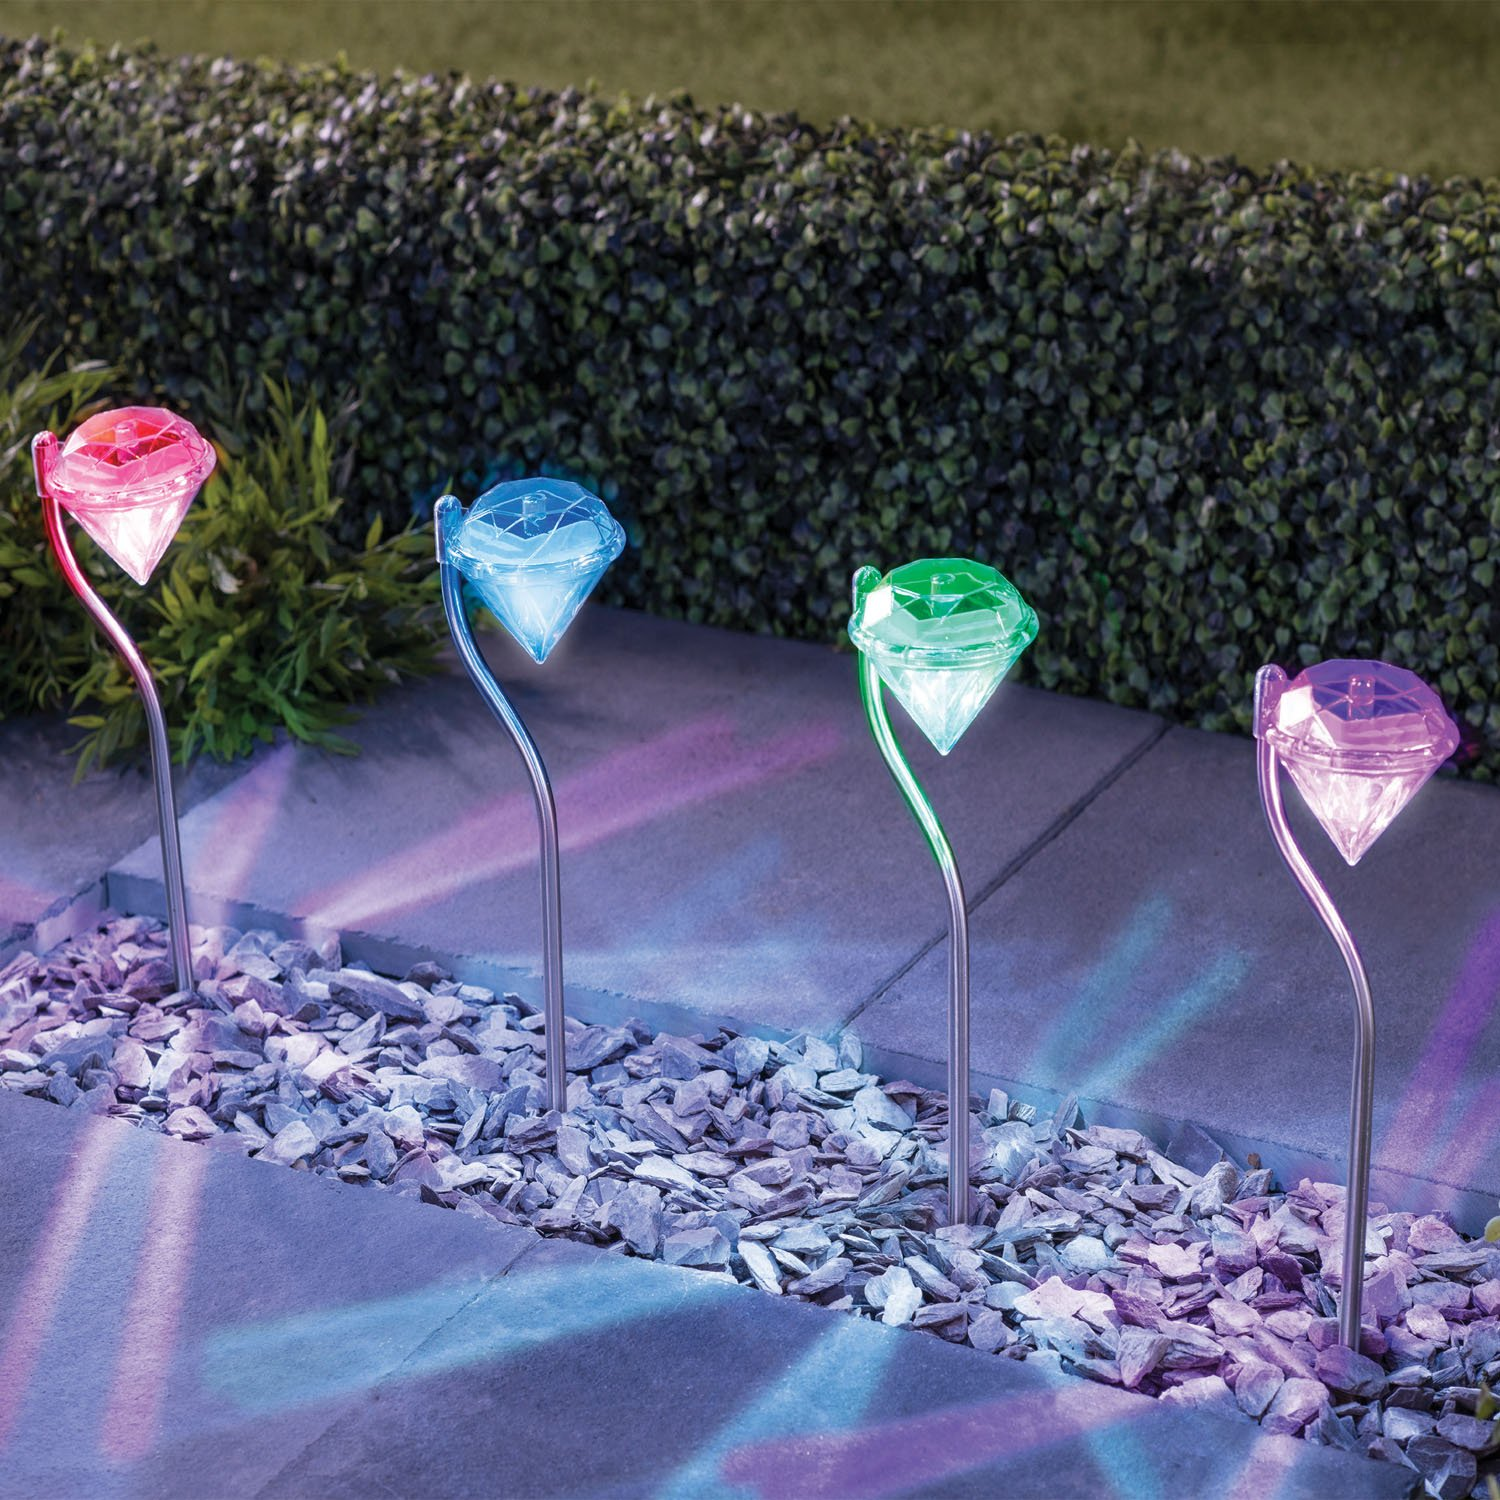 Colour changing stainless steel diamond led solar lights for Lampe de jardin a led